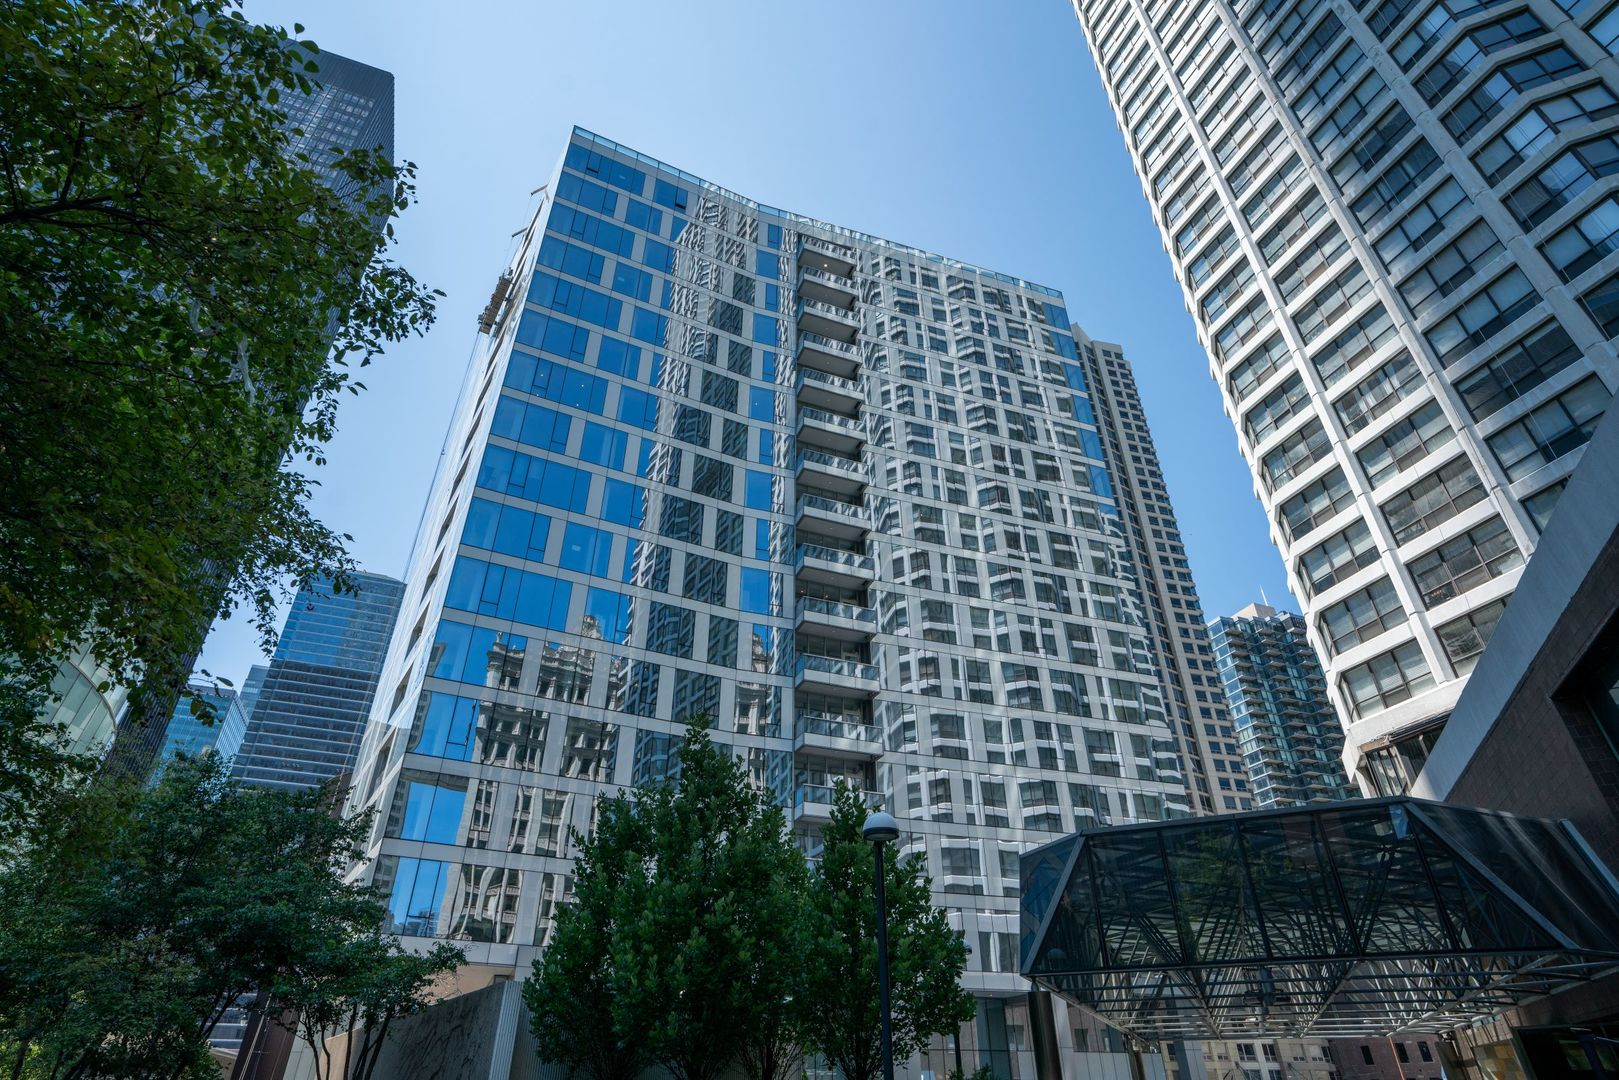 Near North Side Chicago Homes for Sale -  River View,  403 North Wabash Avenue